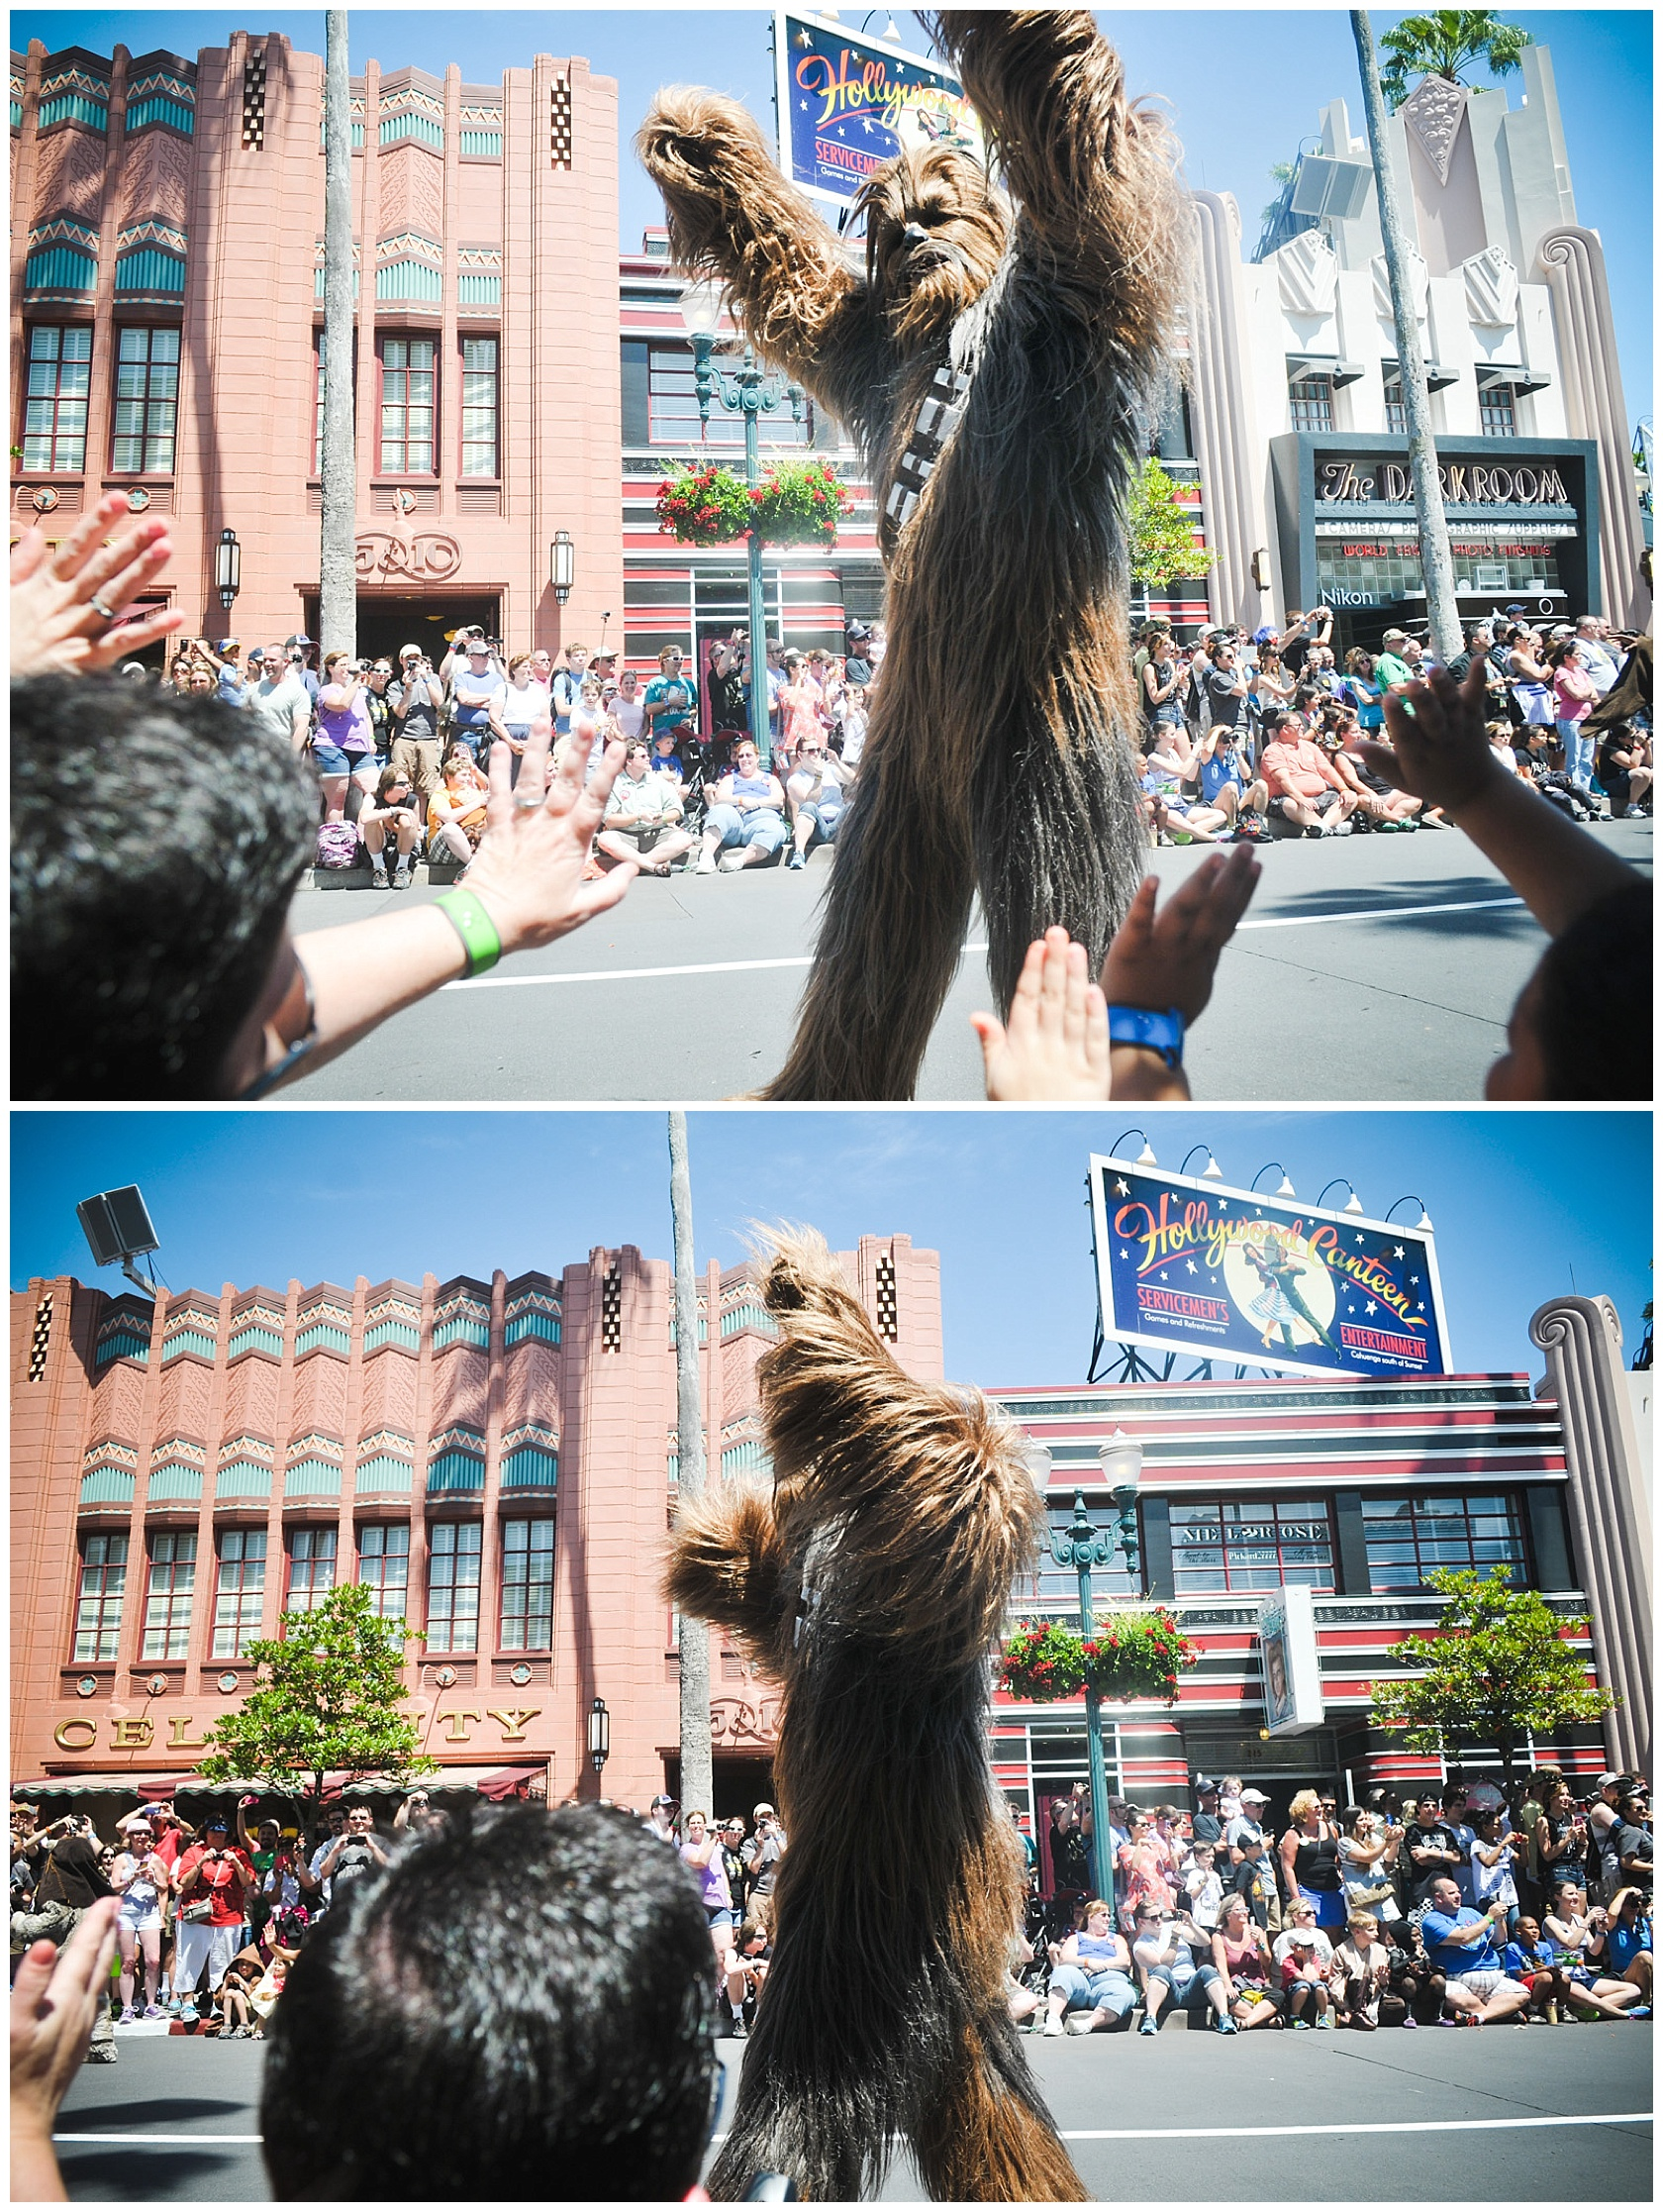 The amazing Chewbacca!